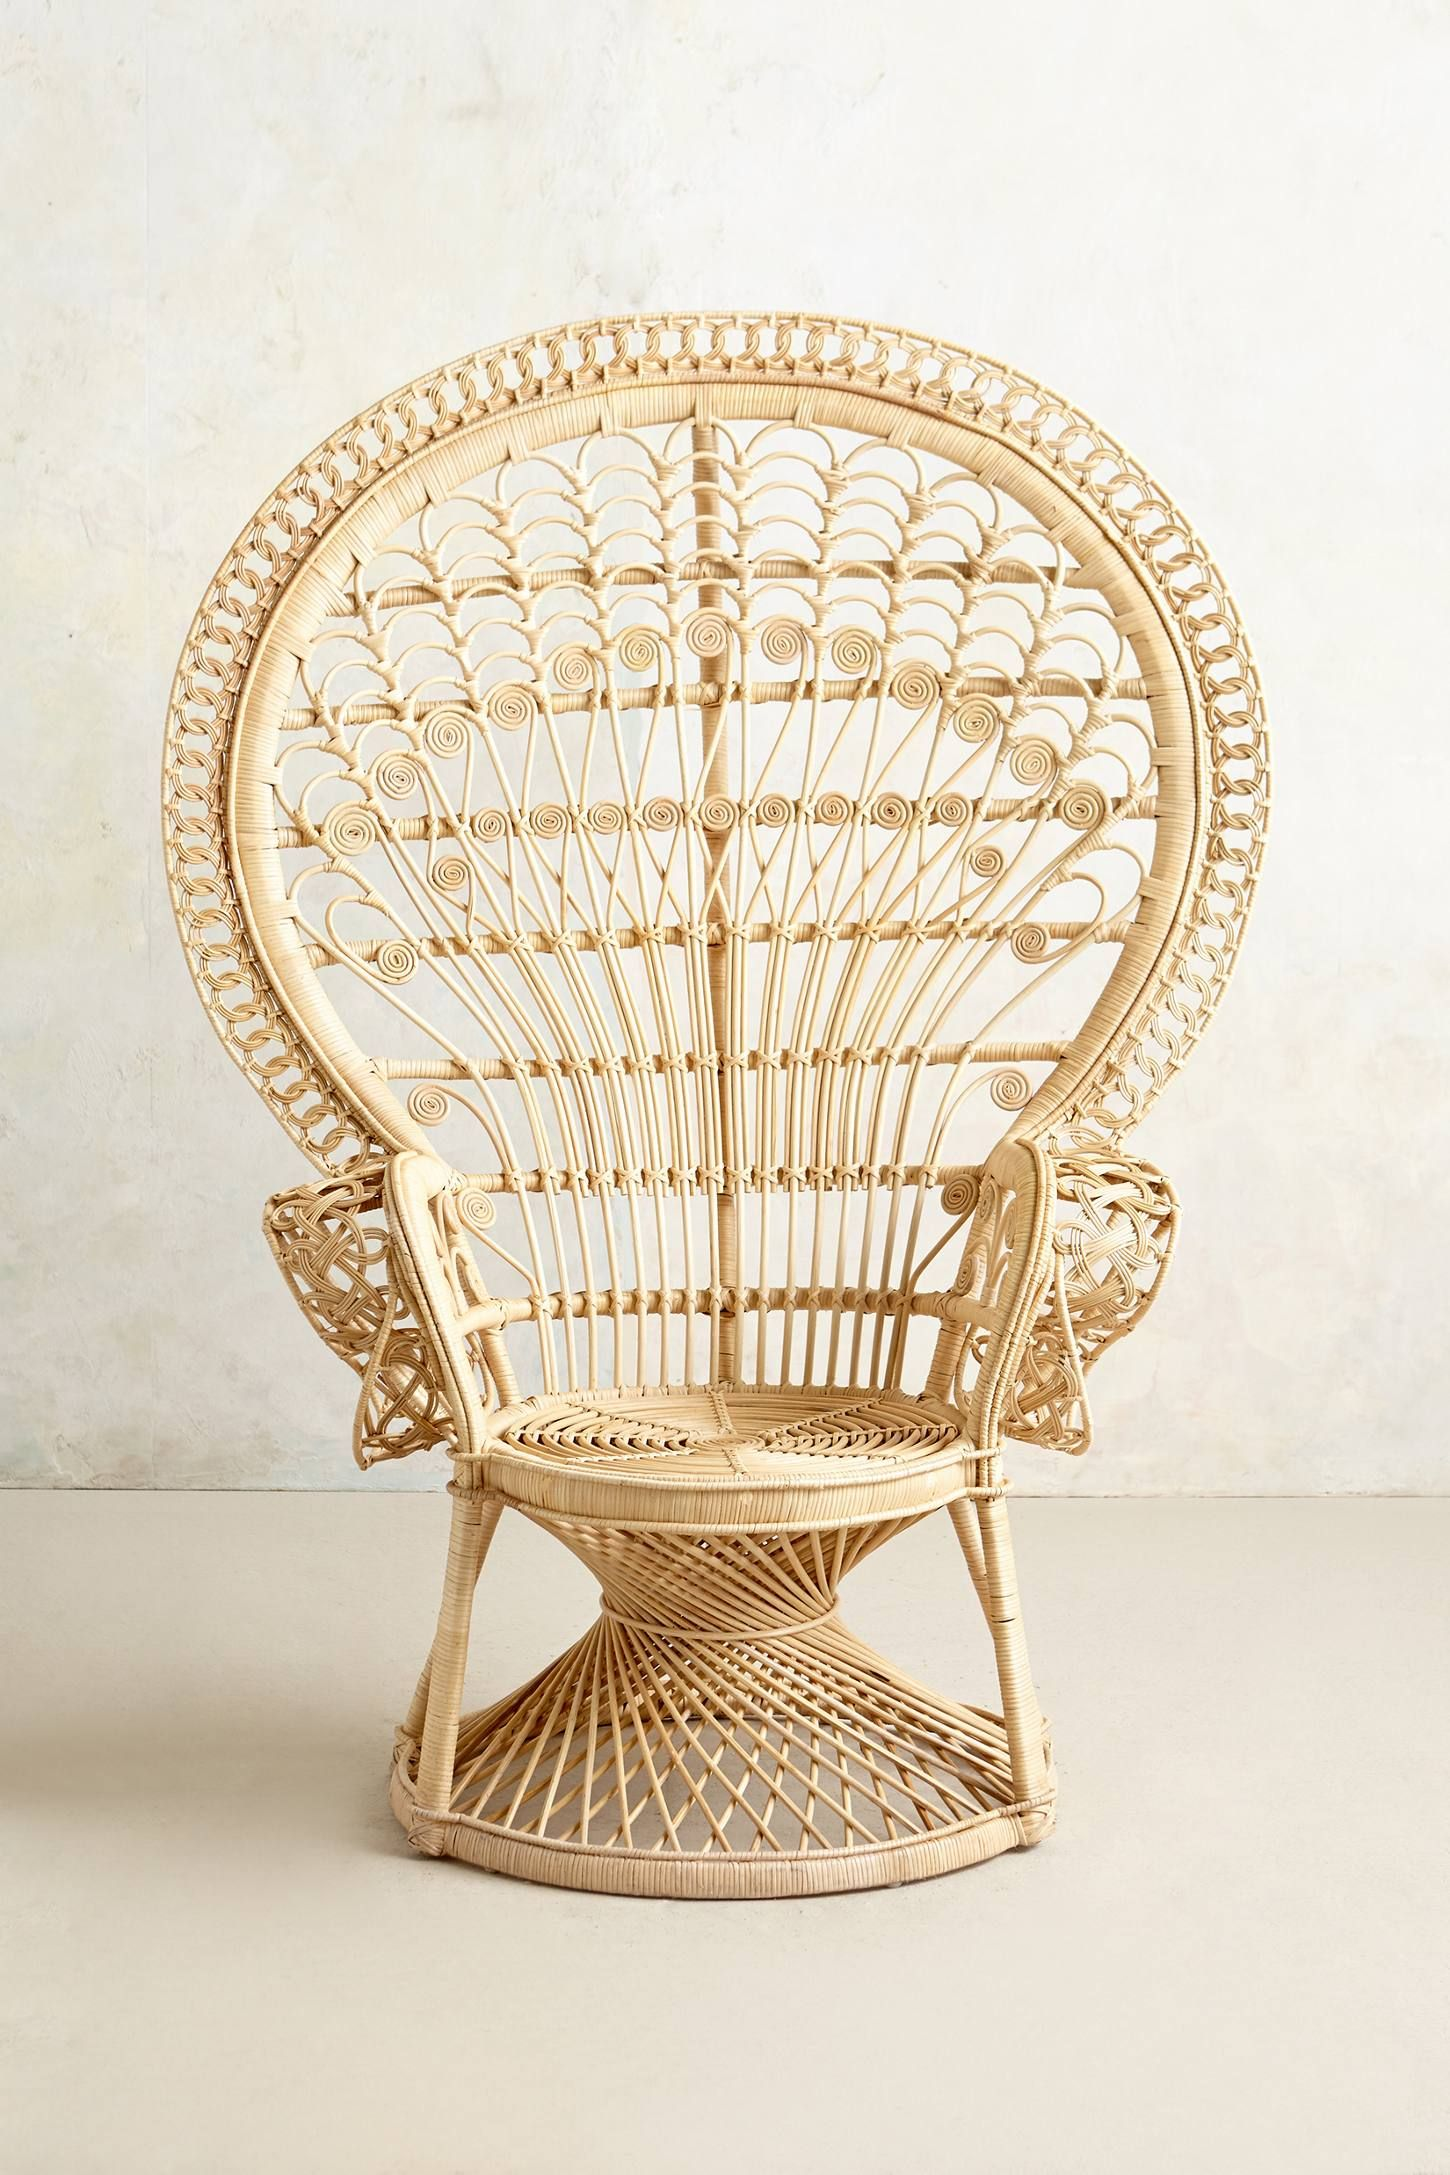 Download Wallpaper Wicker Patio Chairs For Sale